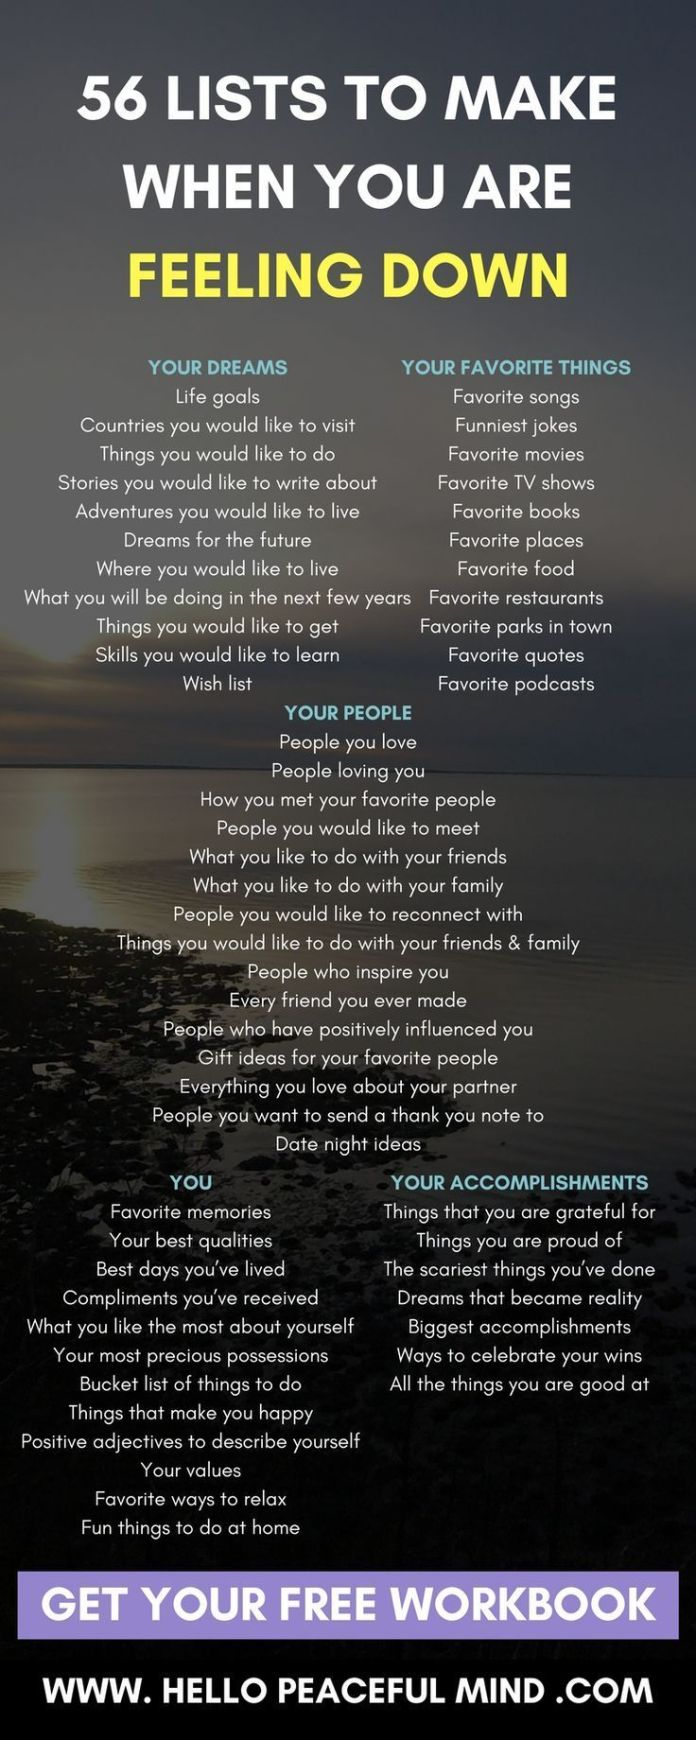 Work Quotes Are You Feeling Down Here Are Easy Lists To Make To